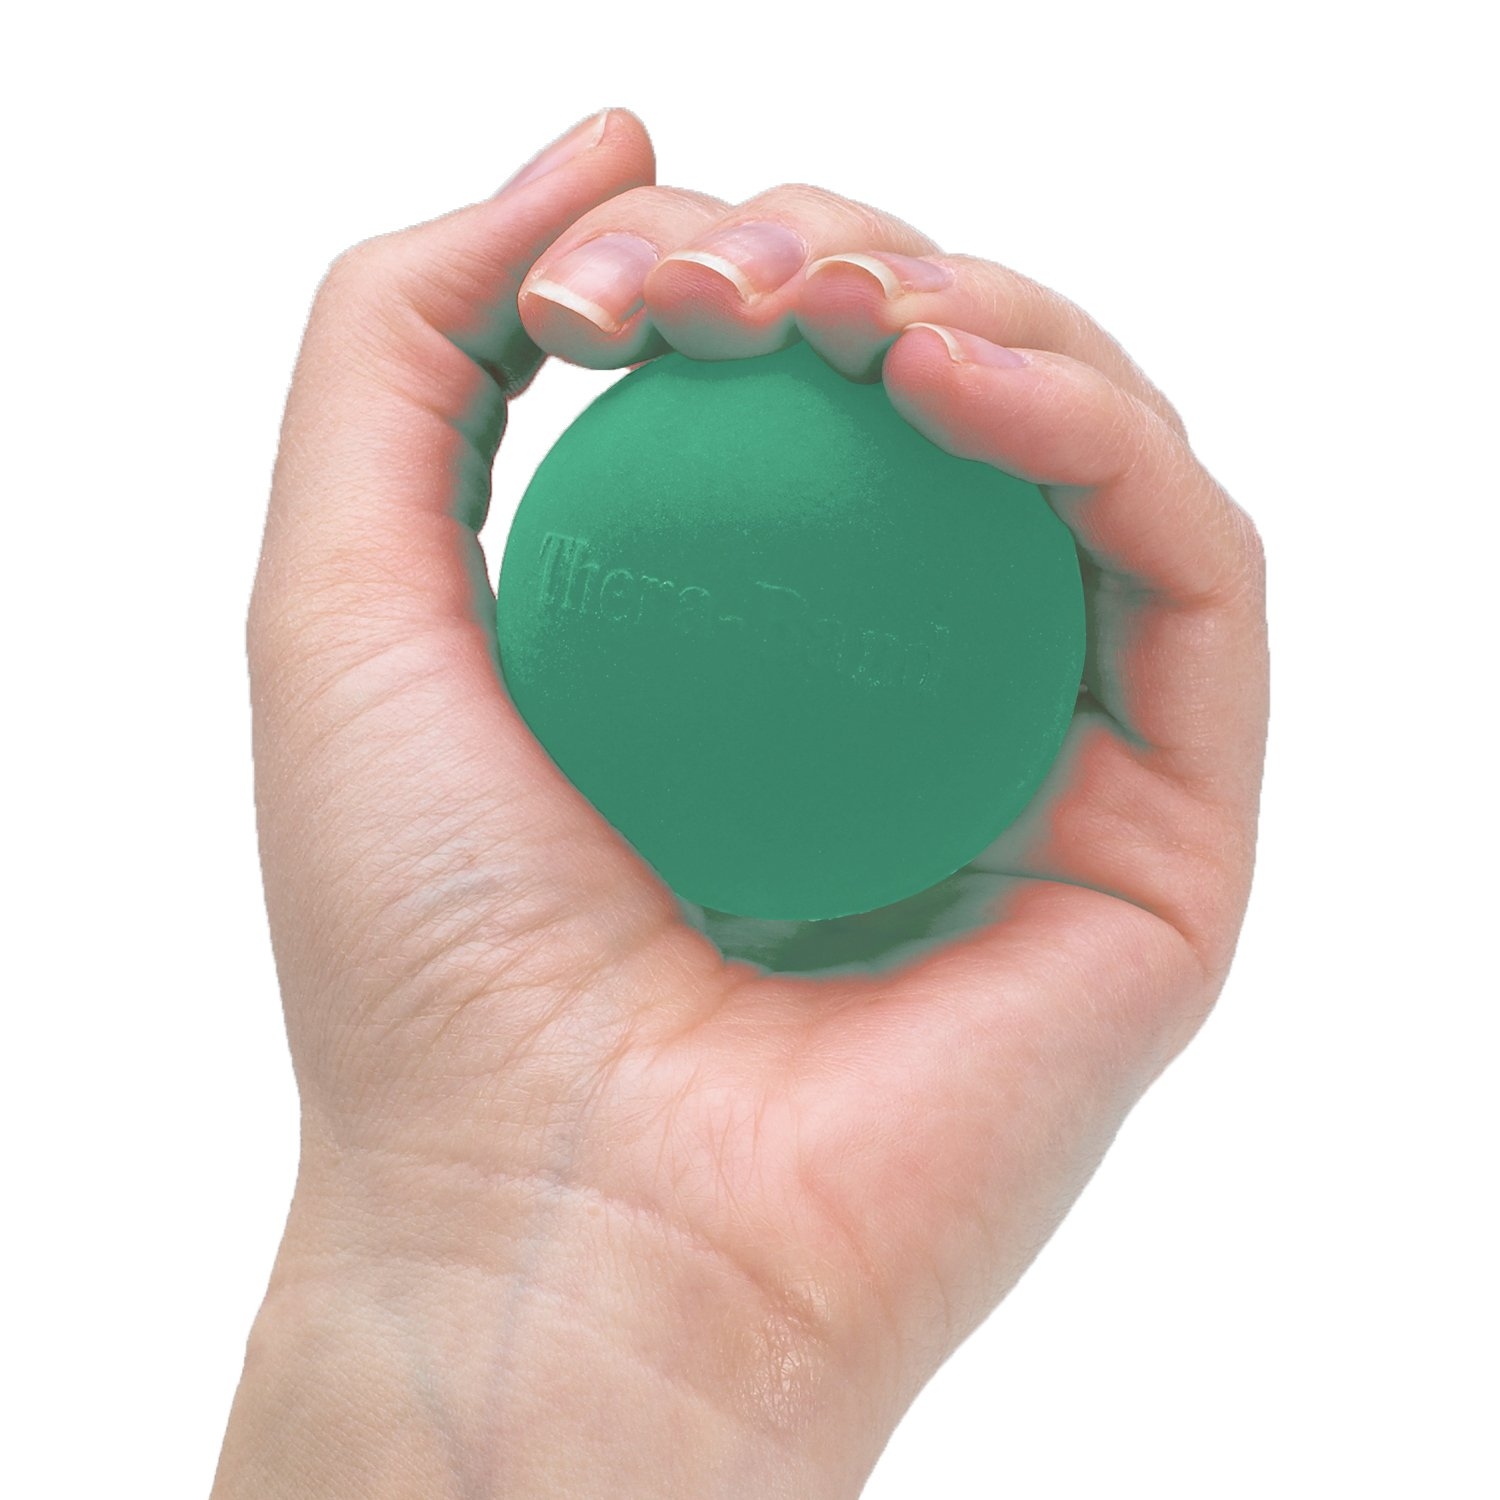 TheraBand Hand Exerciser, Stress Ball For Hand, Wrist, Finger, Forearm, Grip Strengthening & Therapy, Squeeze Ball to Increase Hand Flexibility & Relieve Joint Pain, Green, Medium by TheraBand